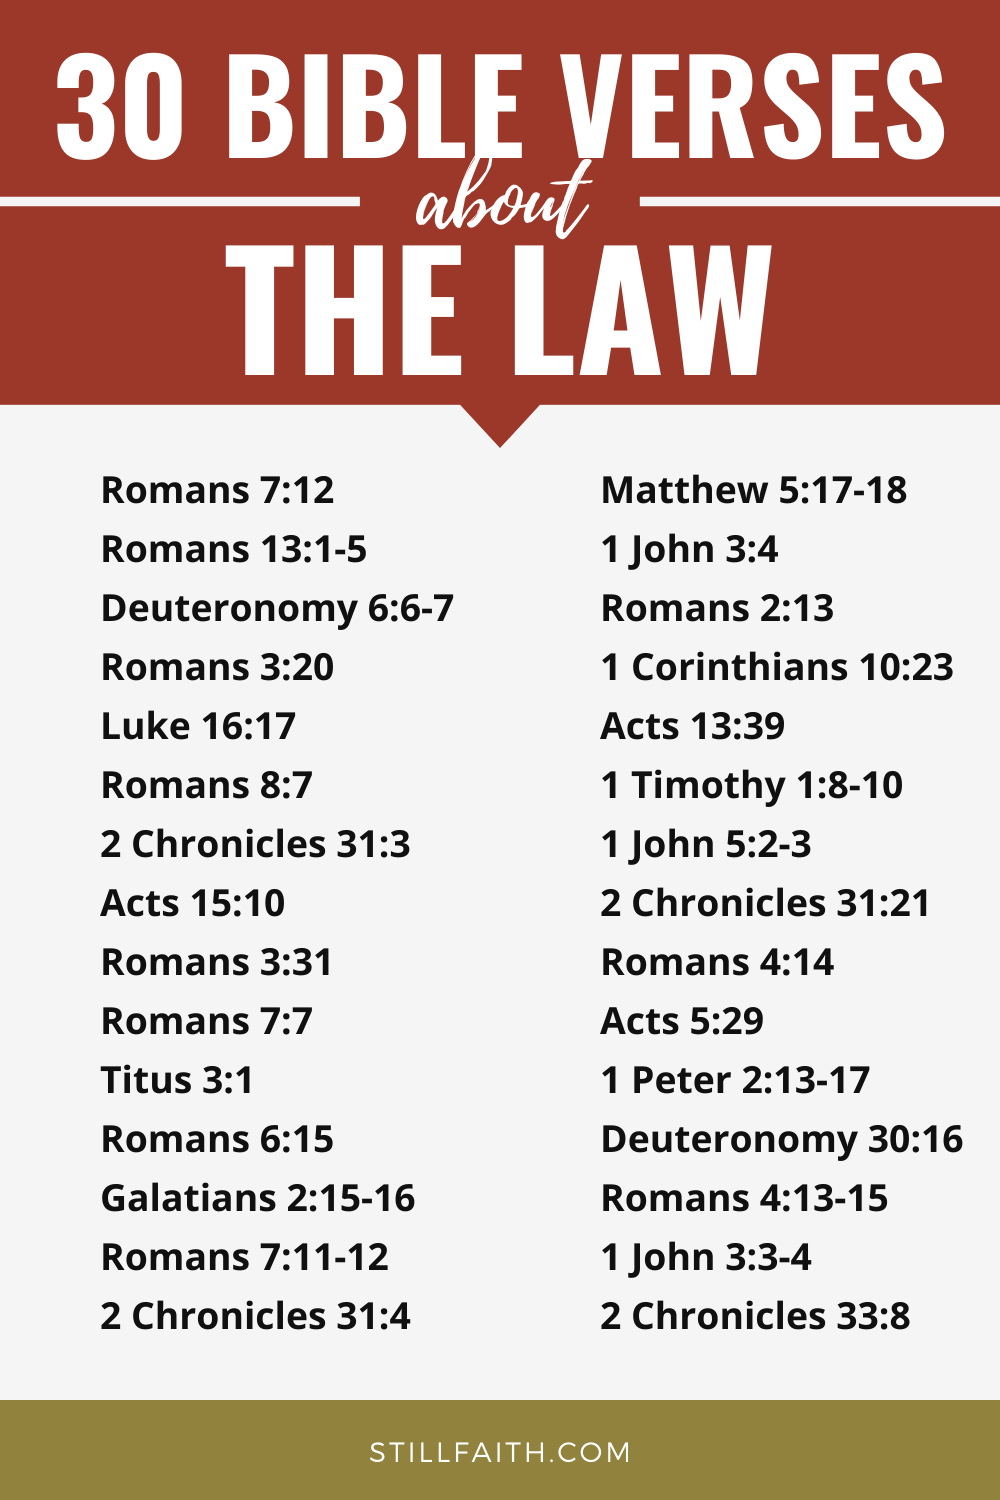 What Does the Bible Say about the Law?